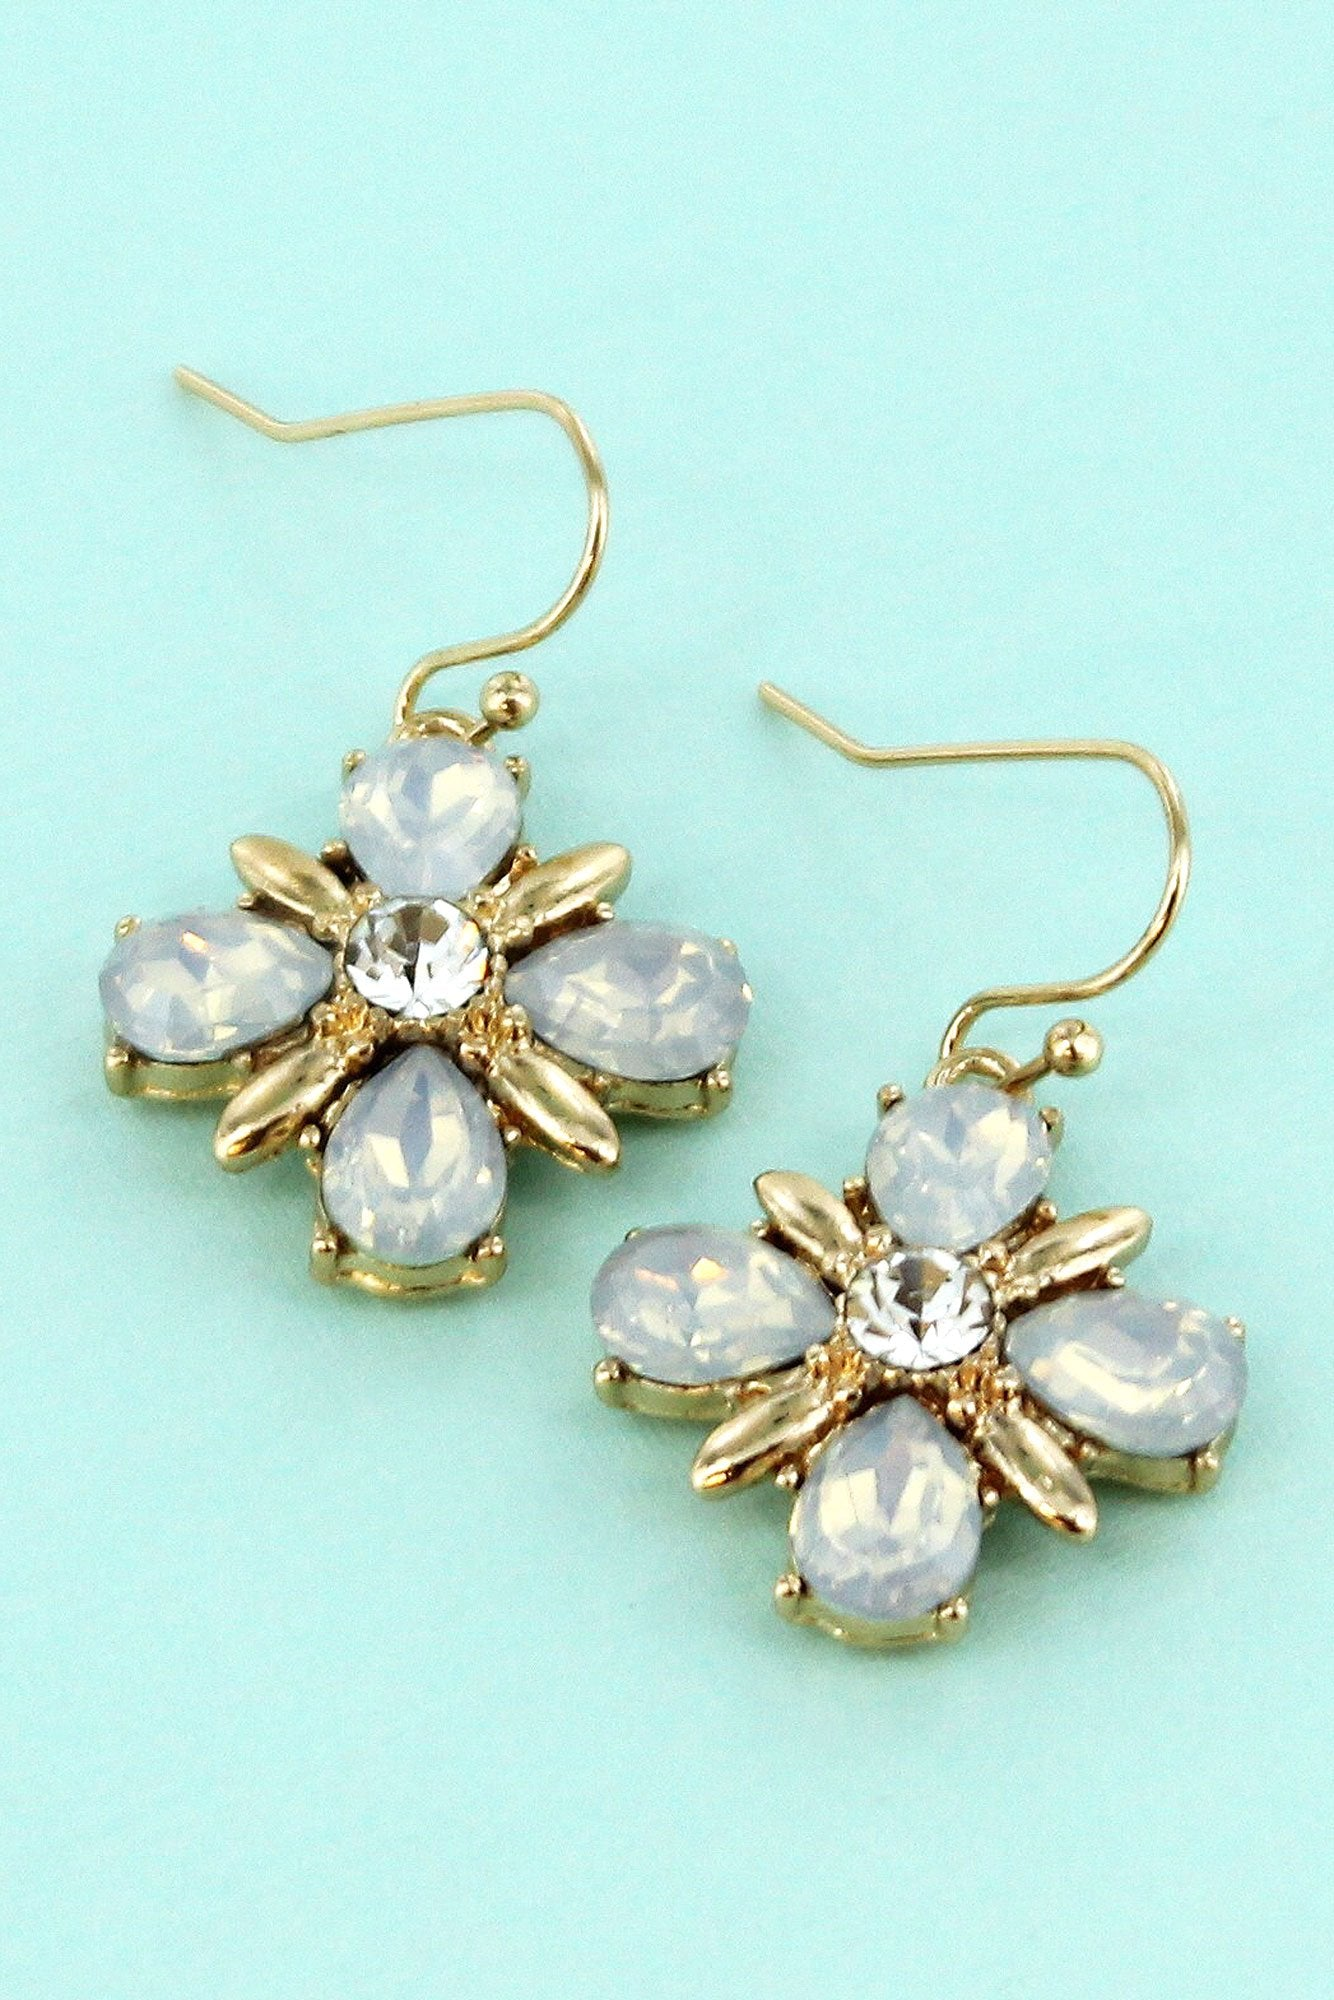 White Crystal And Goldtone Flower Earrings Wholesale Accessory Market